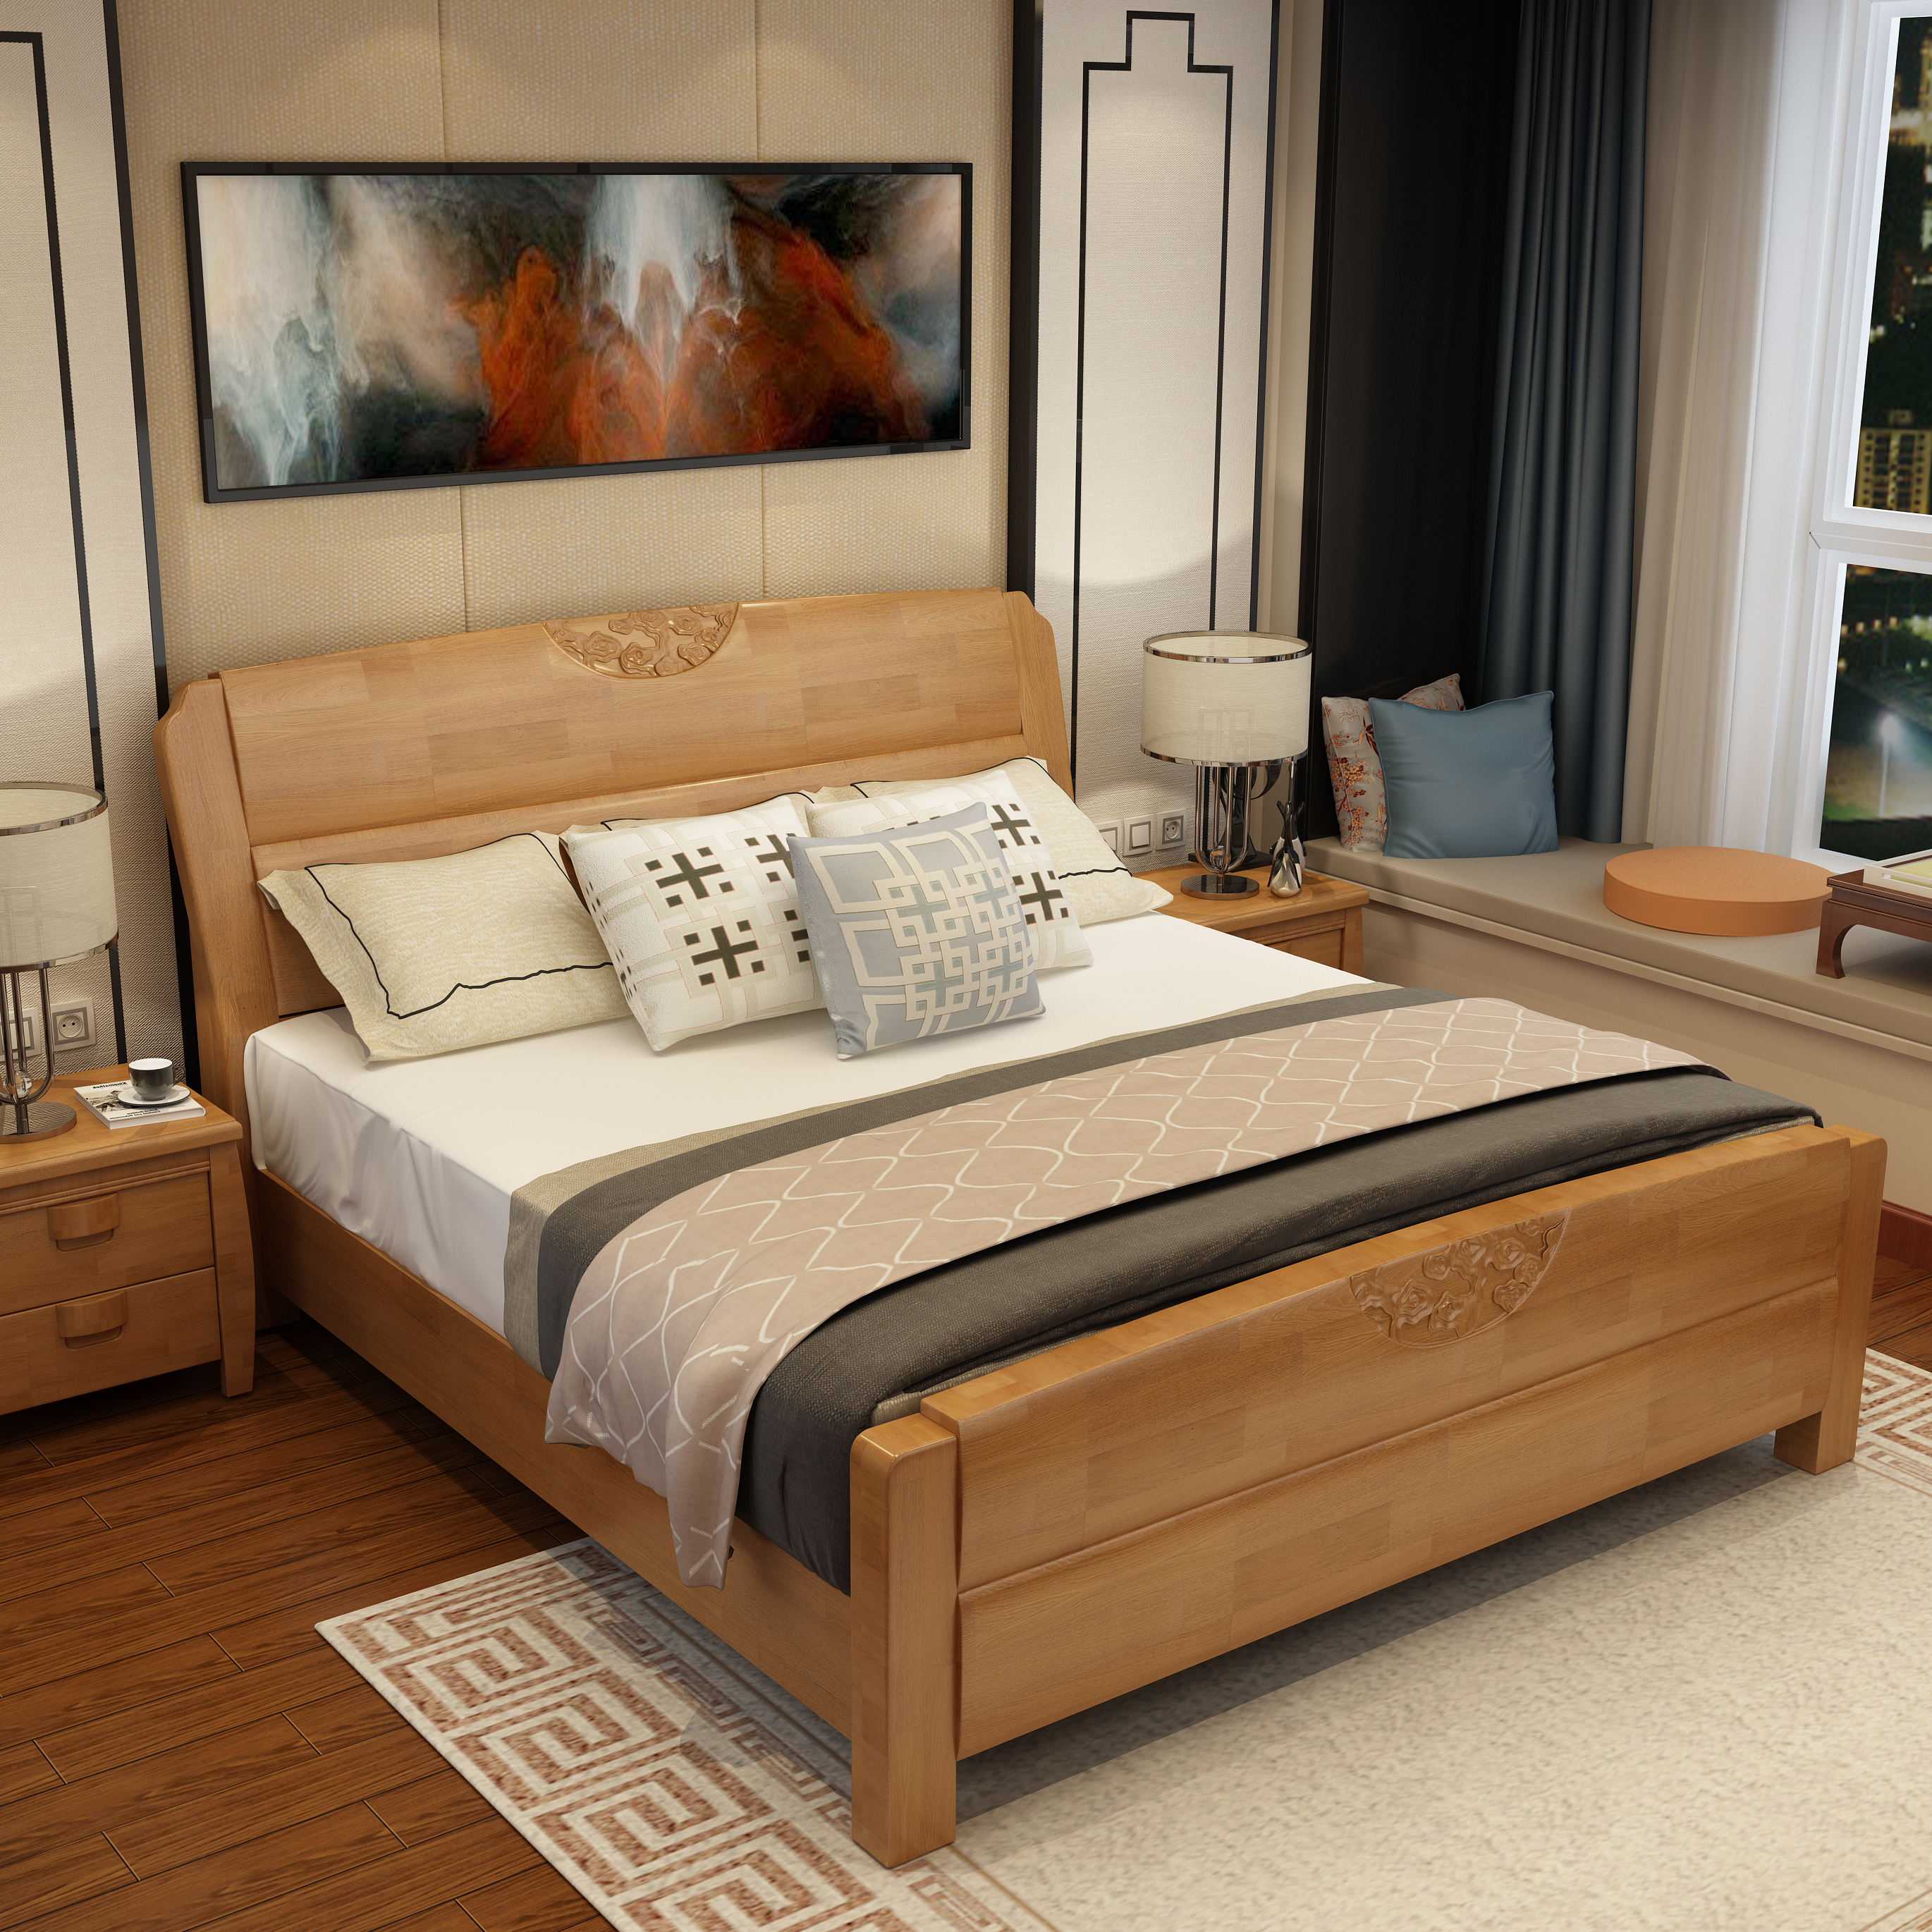 All solid wood bed, 1.5 oak beds, 1.21.8 meters special double bed, high box storage case bed, children's bed 1.35